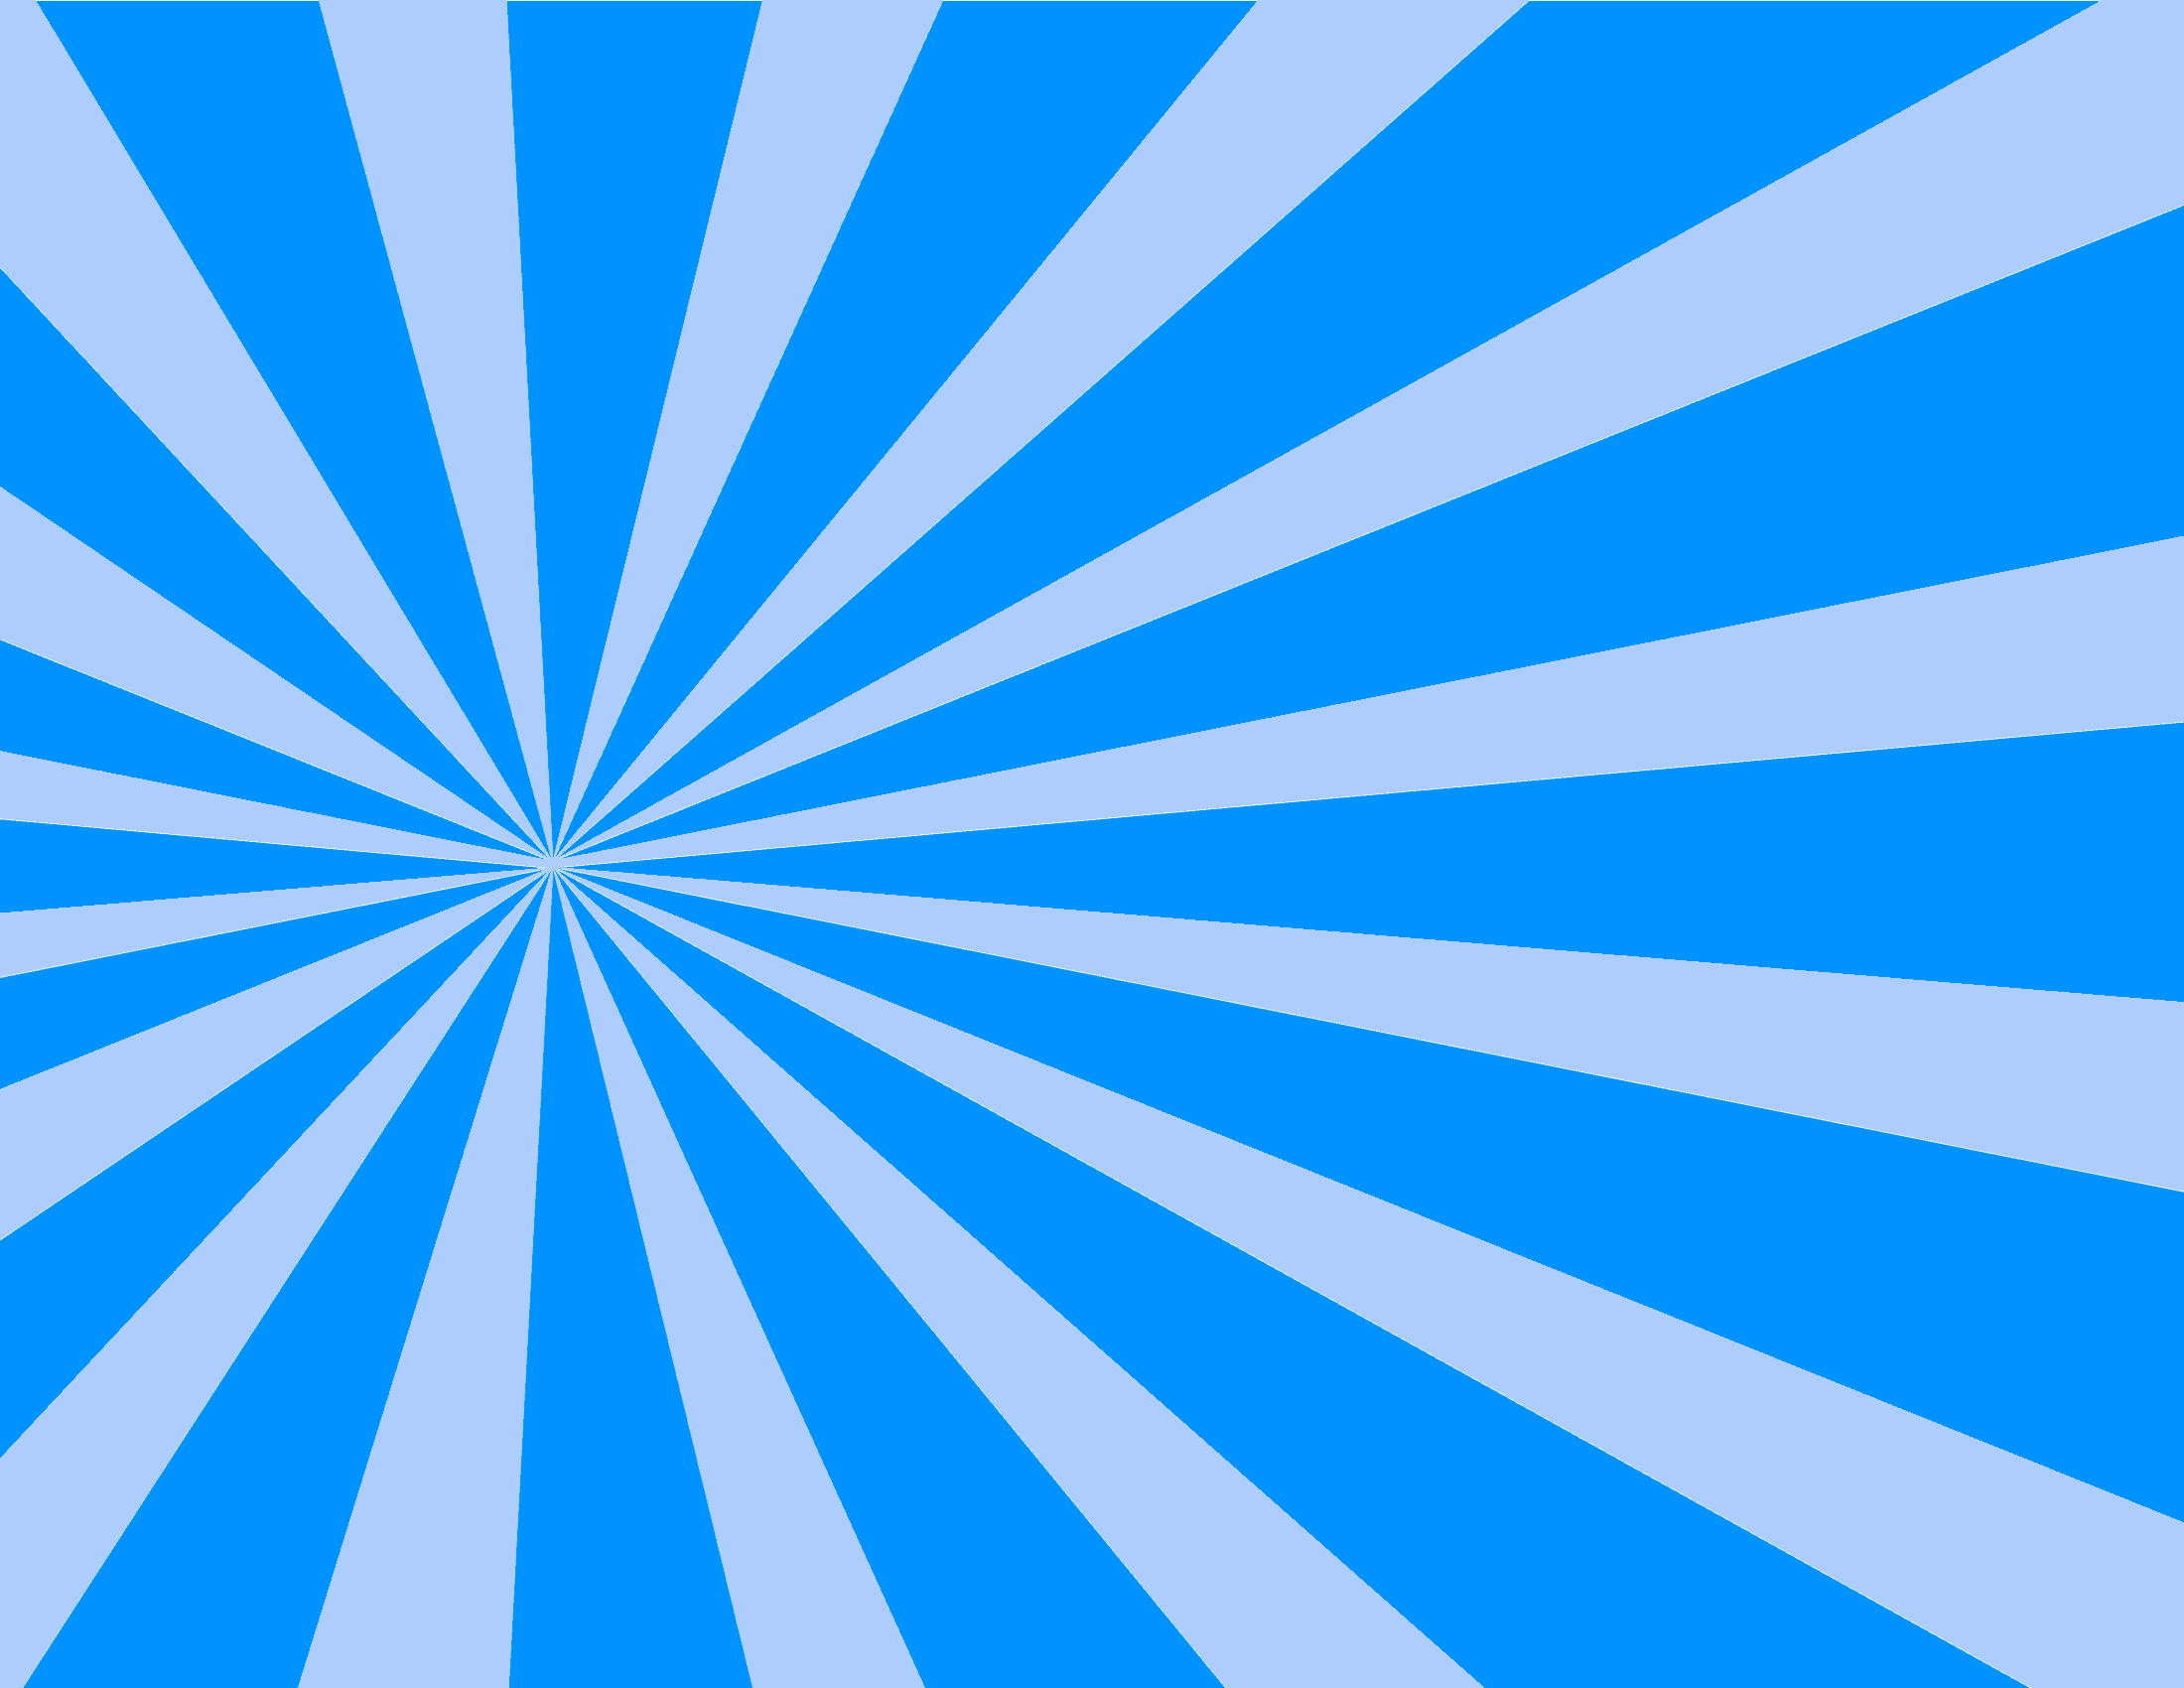 2200x1700 Free Sunburst Background In Any Colors